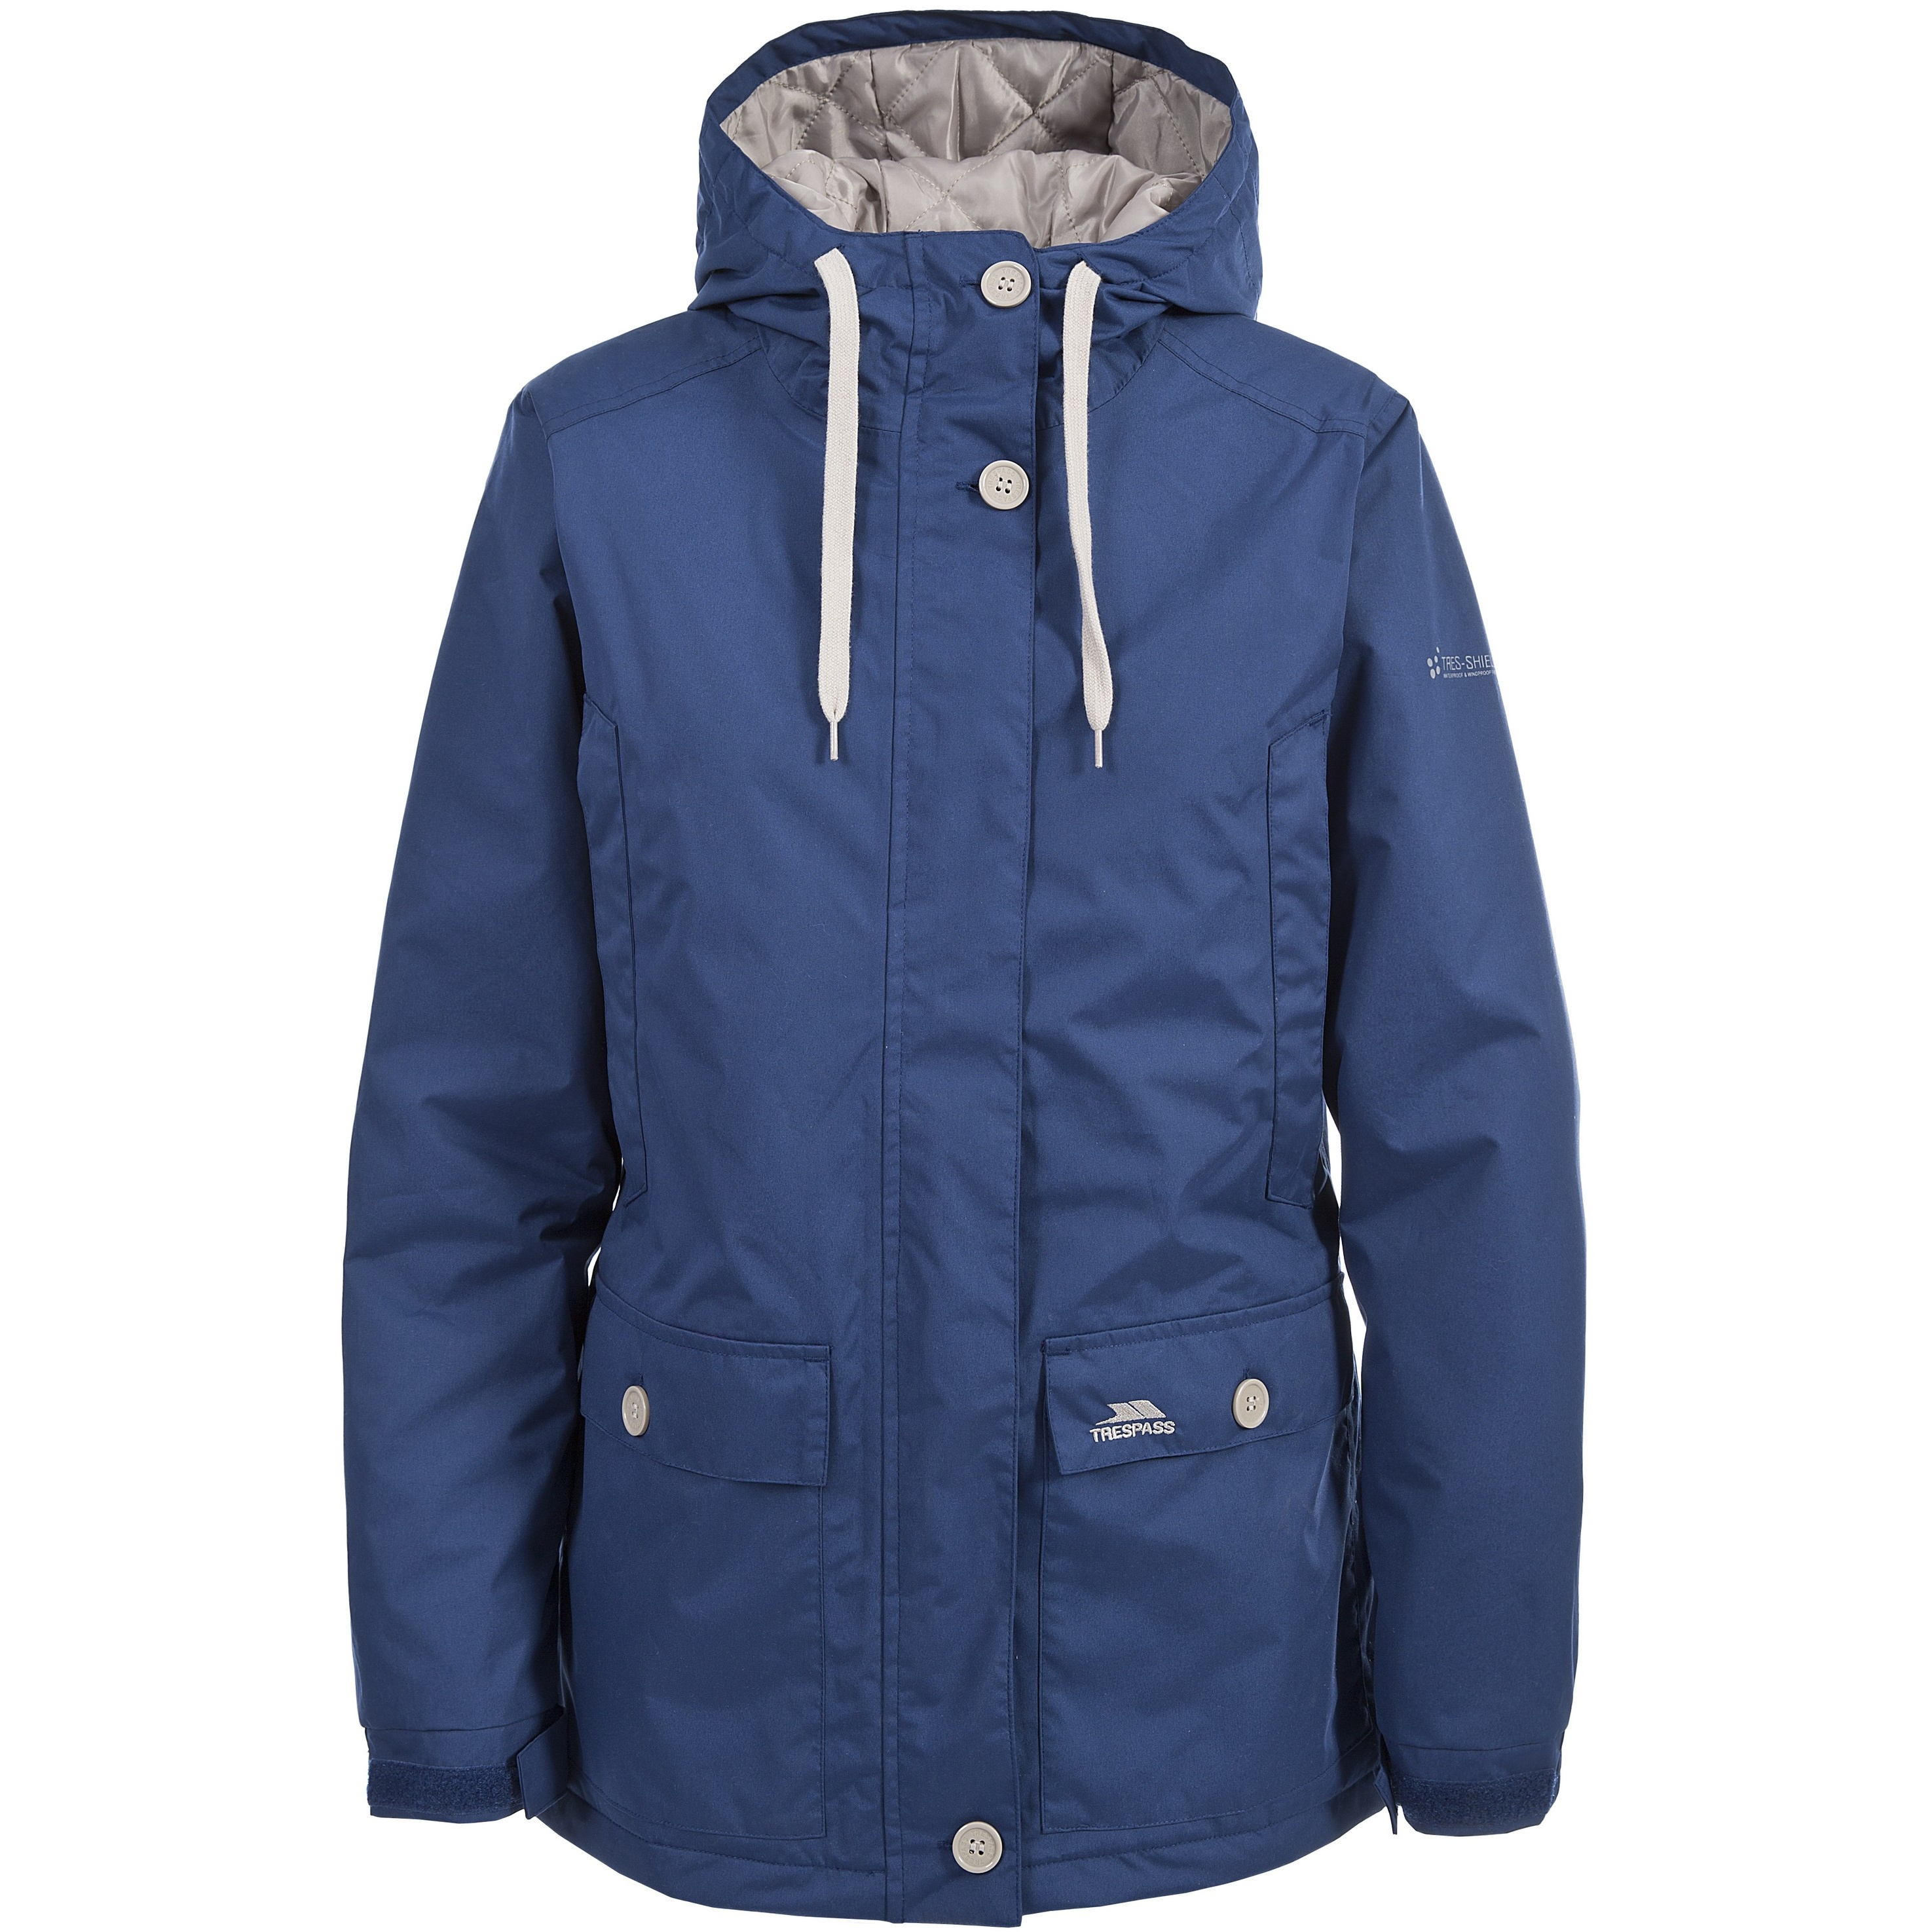 Top 28+ - Windproof Jackets For Images